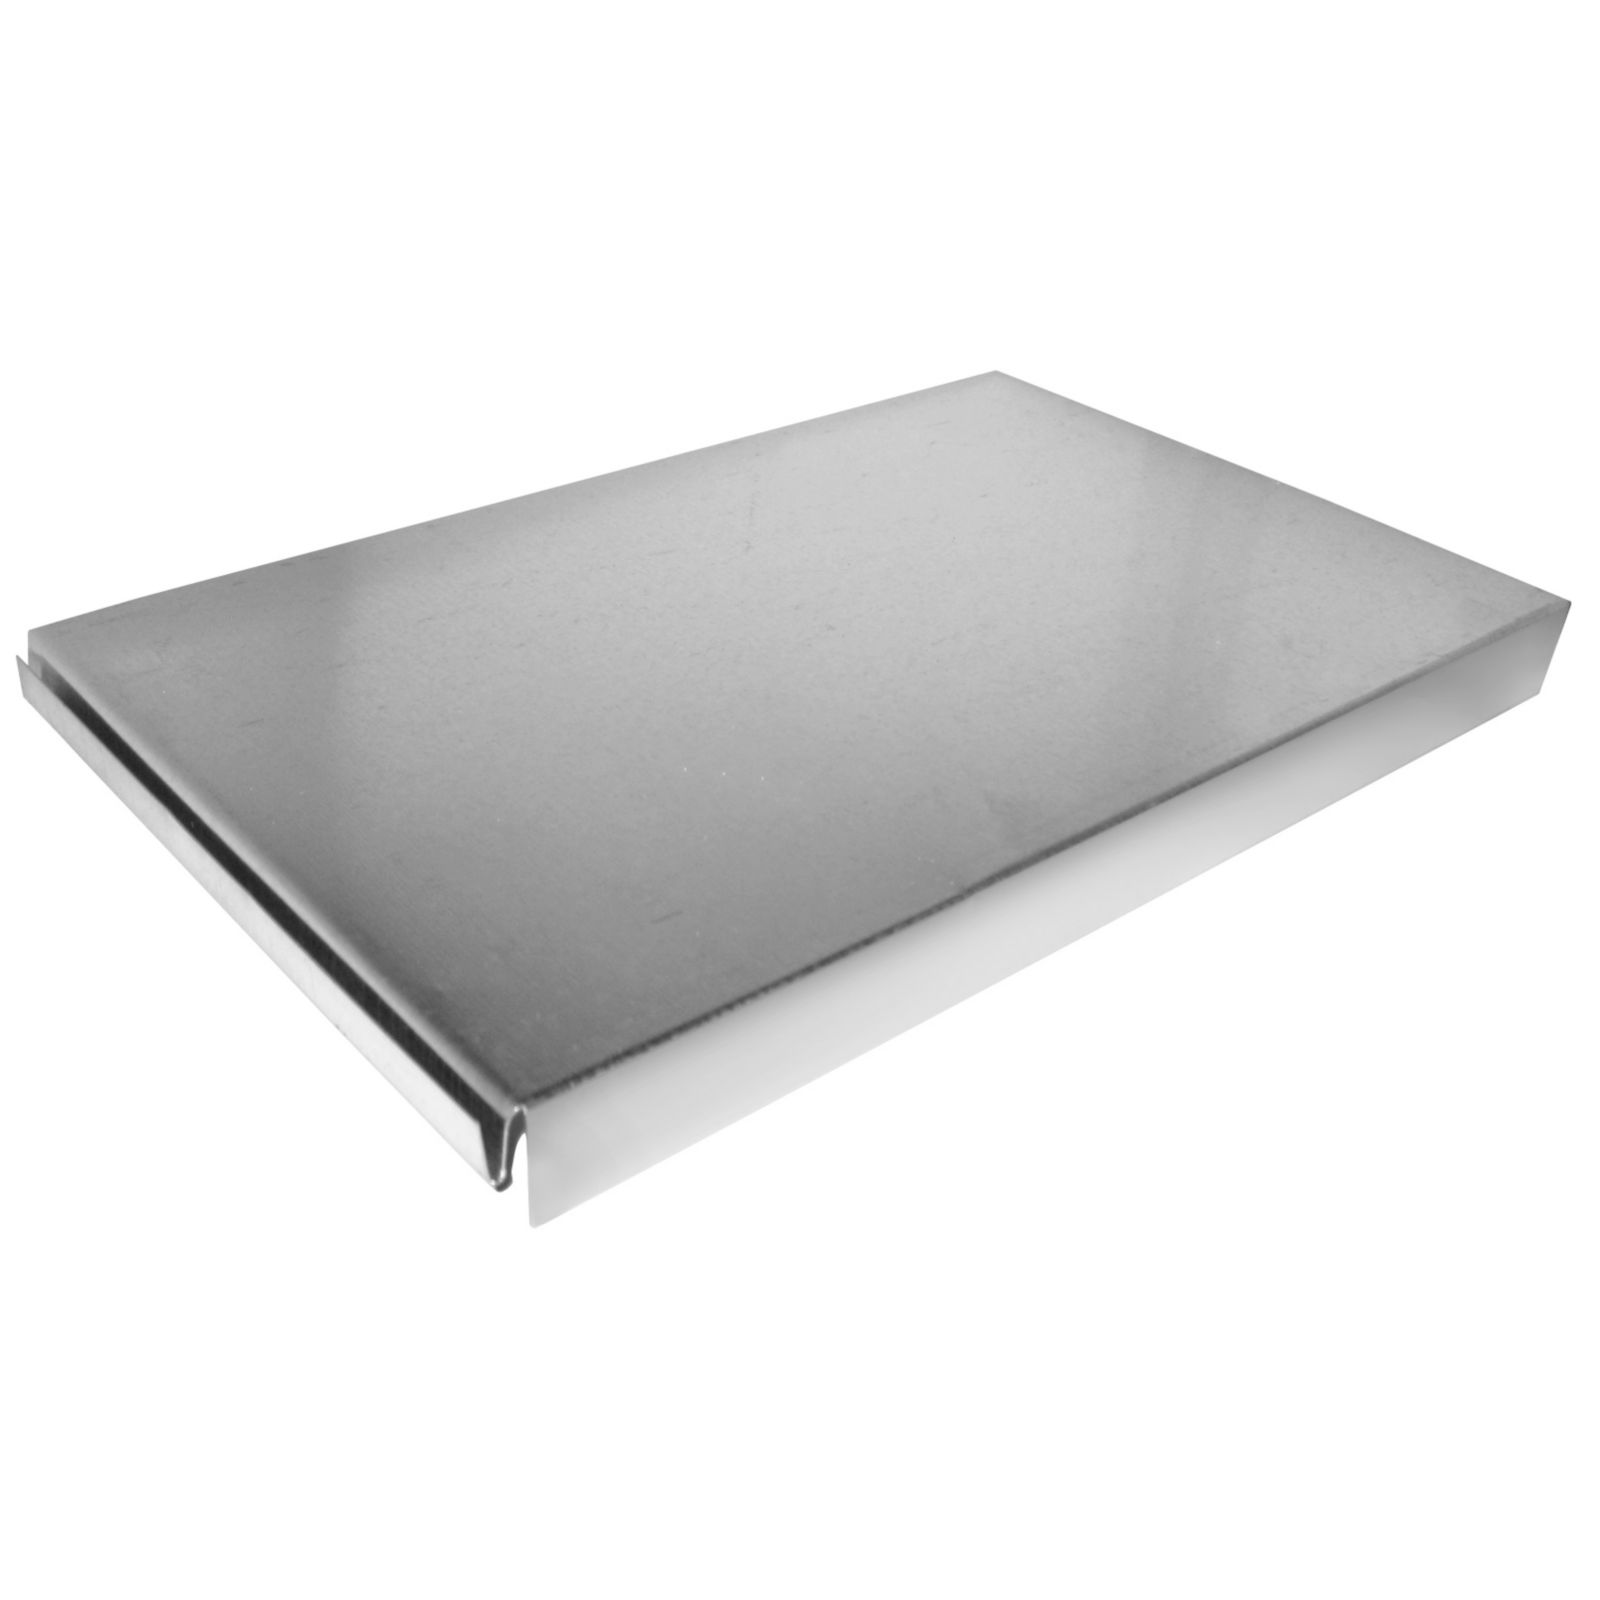 "Southwark 211812 - 18"" X 12"" Trunk Duct End Cap, Hot Dipped Galvanized Steel Per ASTM A653 CS Type B"